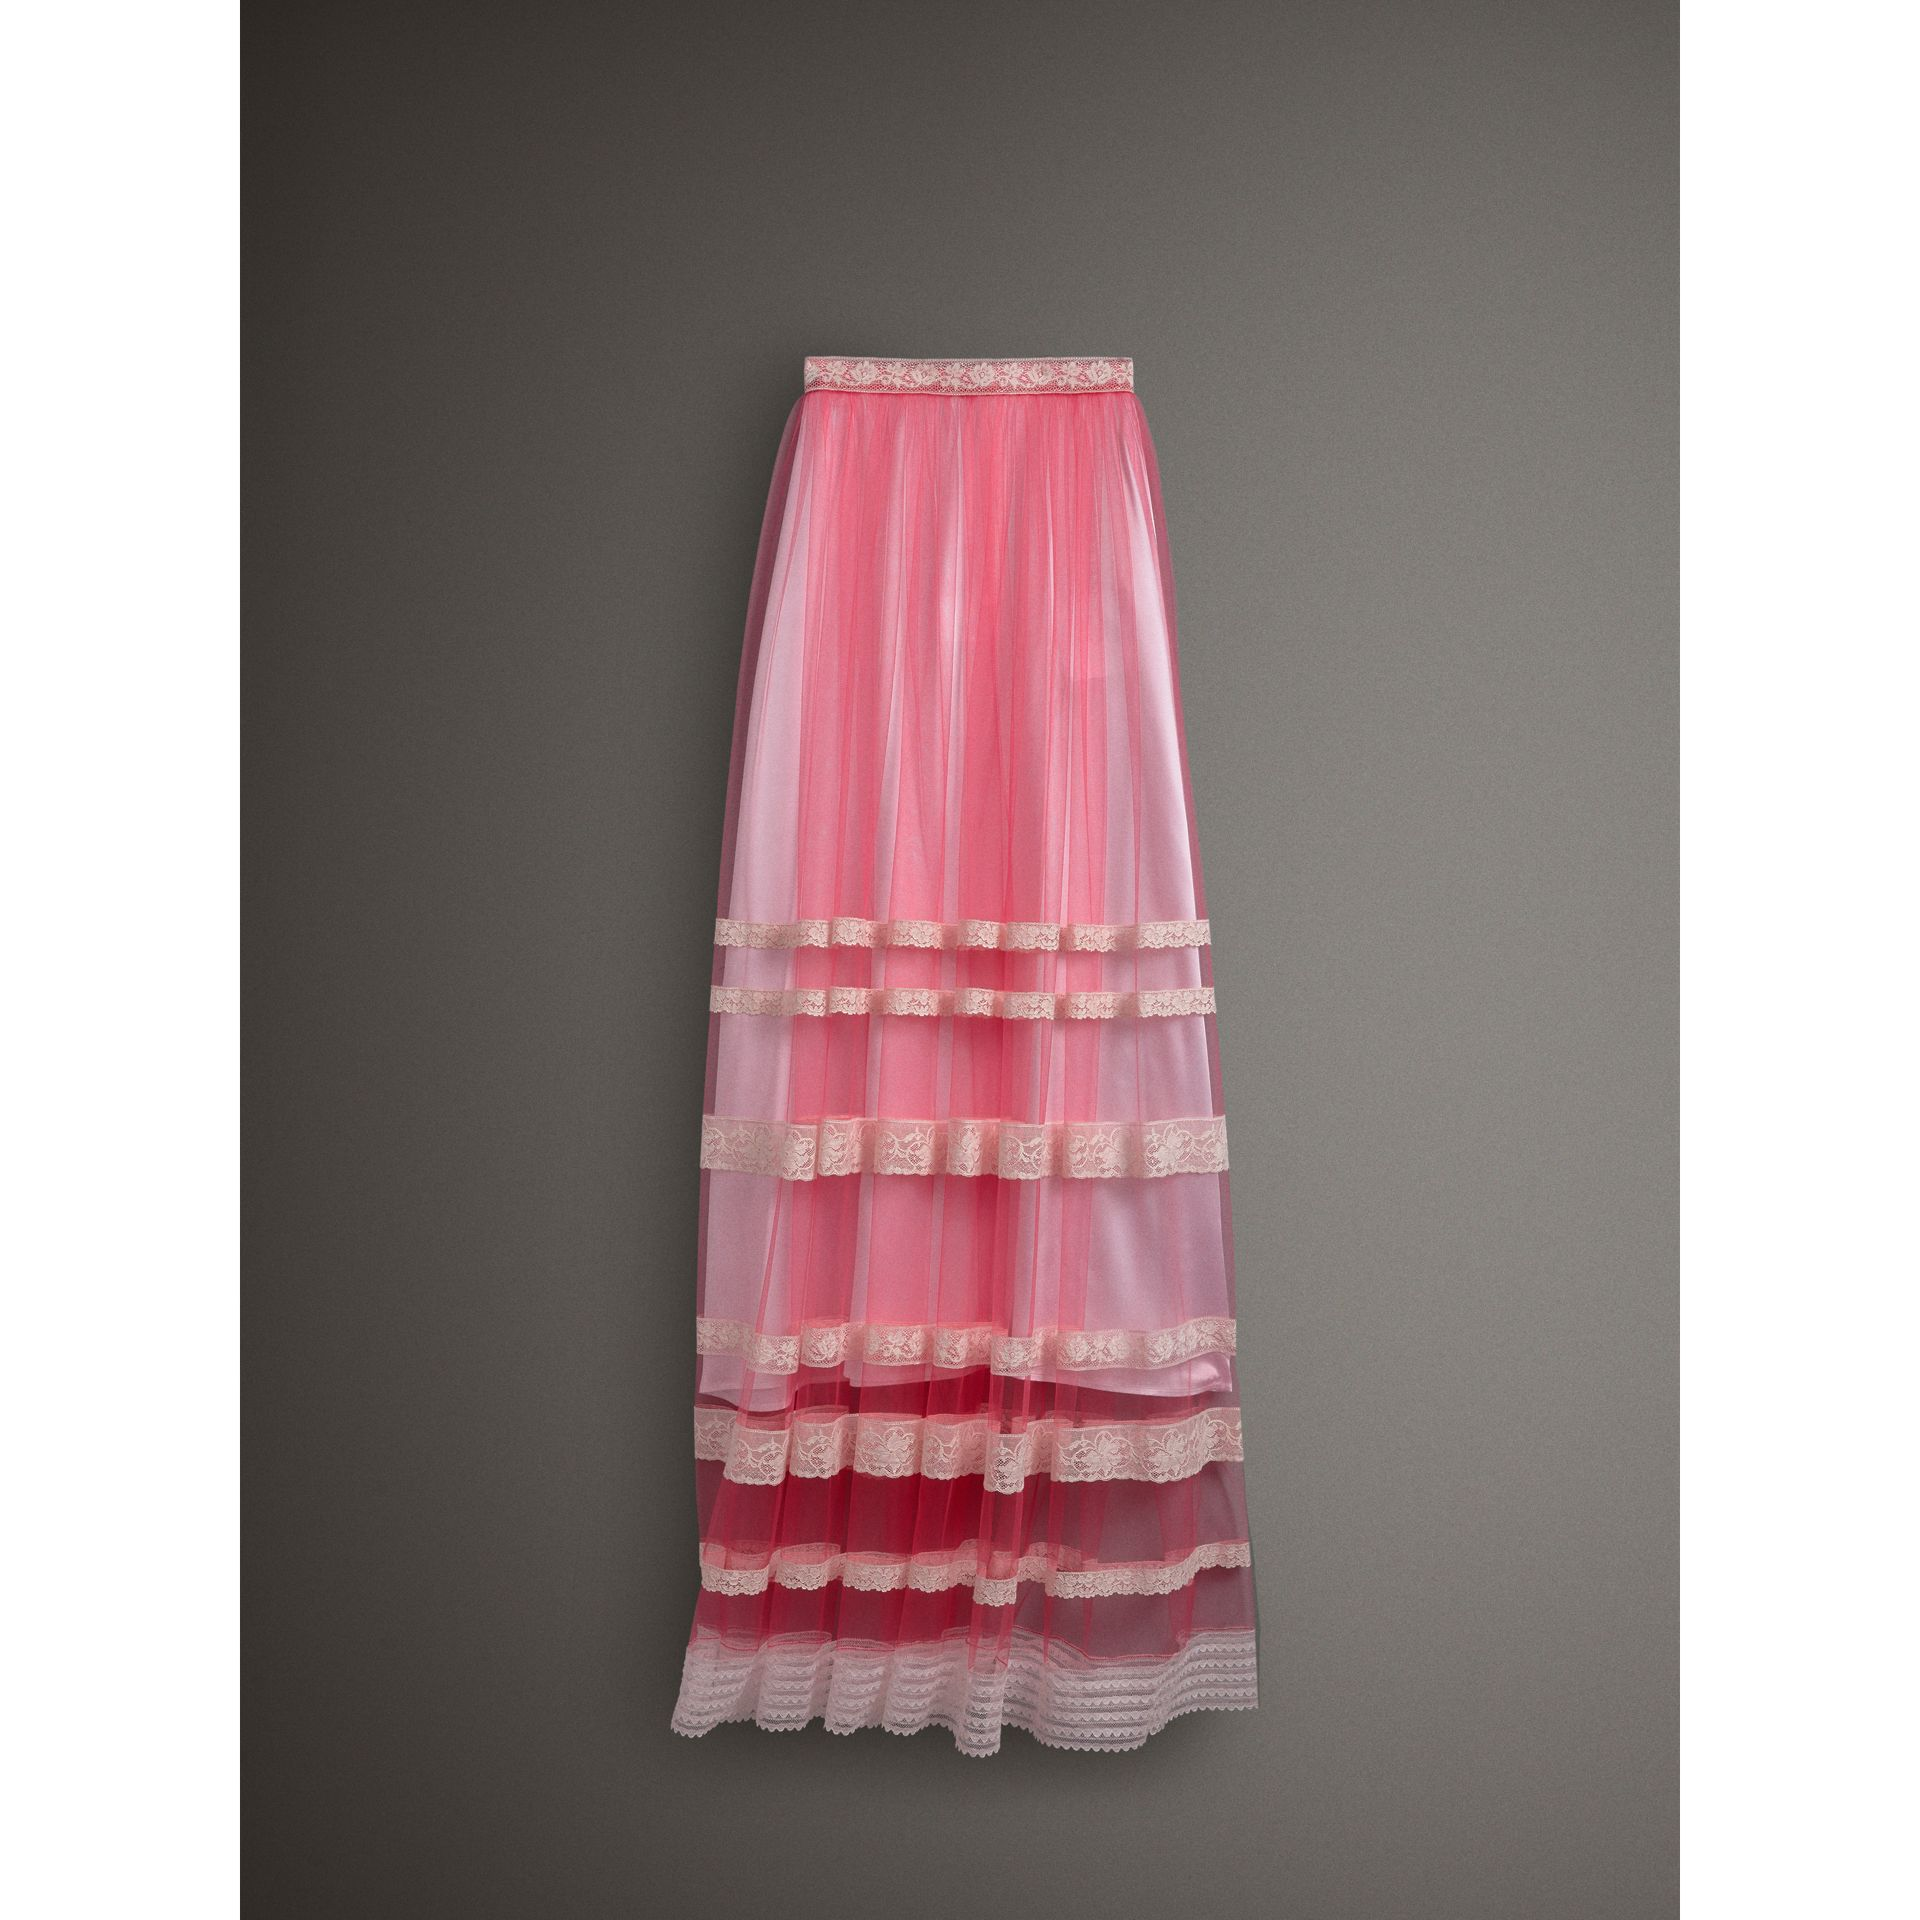 Floor-length English Lace Trim Tulle Skirt in Bright Pink - Women | Burberry Singapore - gallery image 4